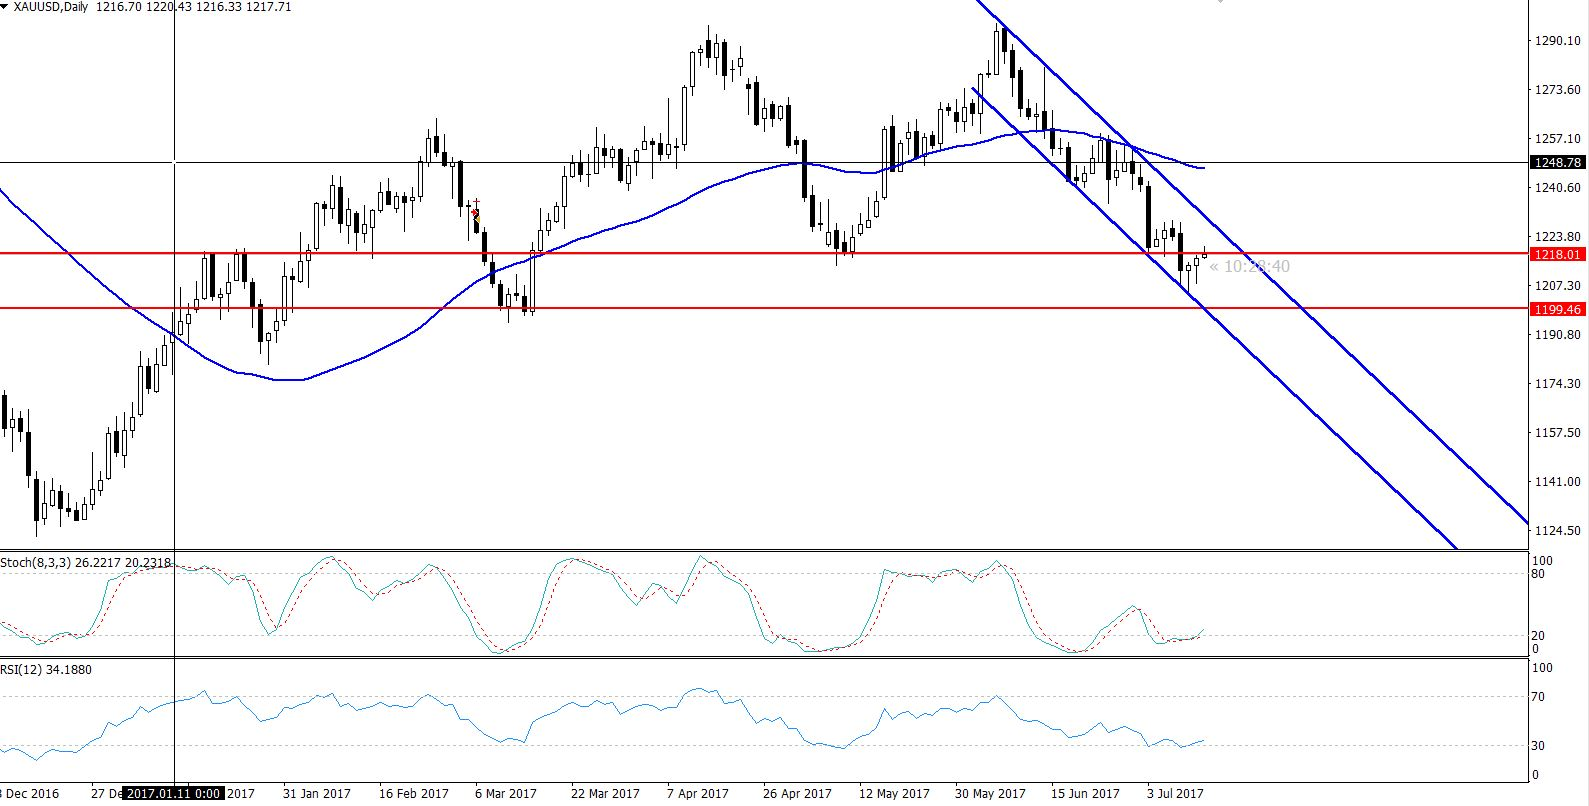 Gold Bearish Channel - Daily Chart